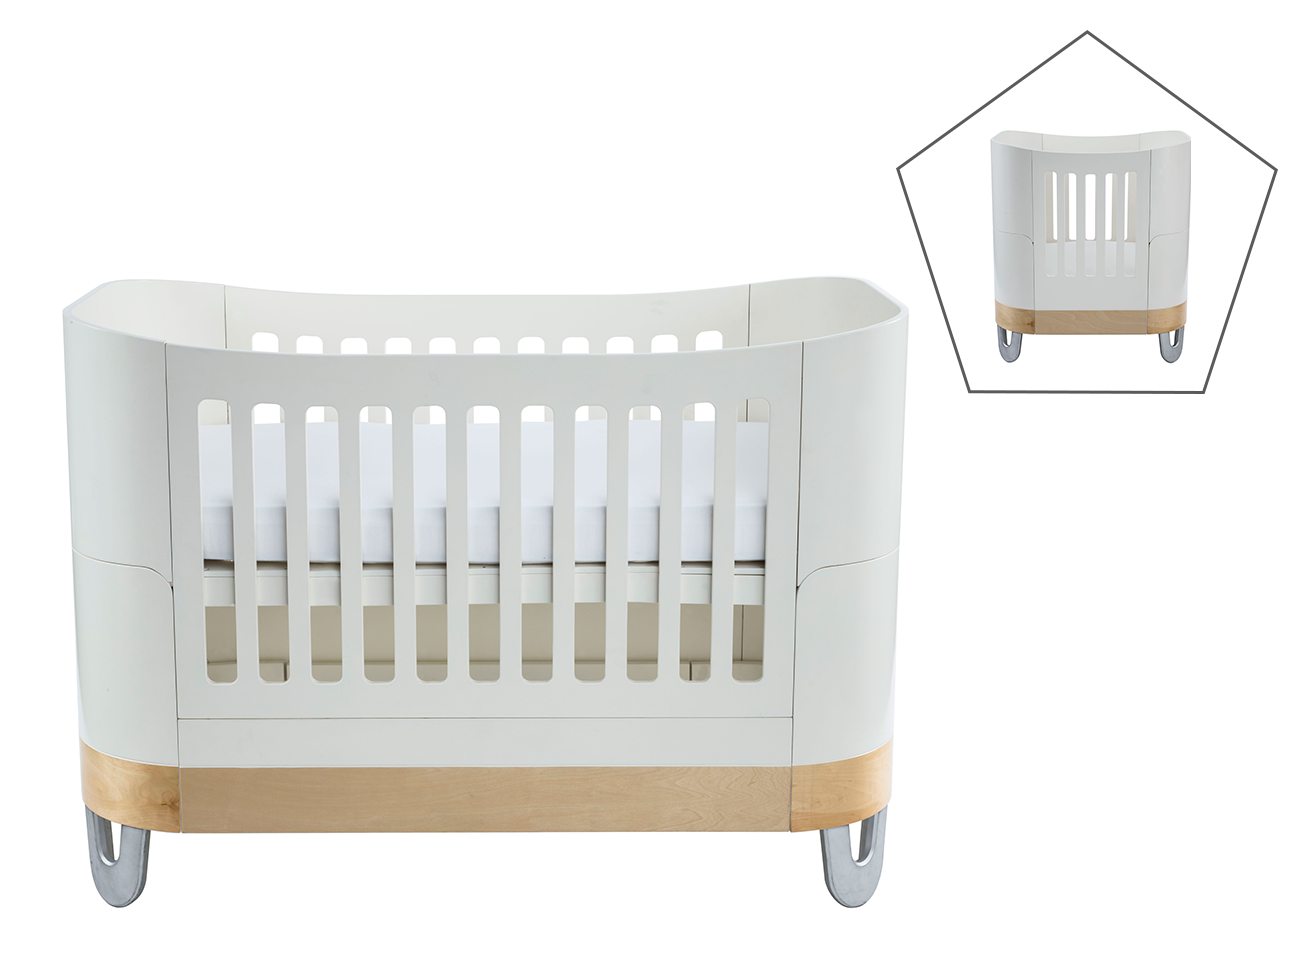 Gaia Serena Complete Sleep+/ Mini - White/Natural